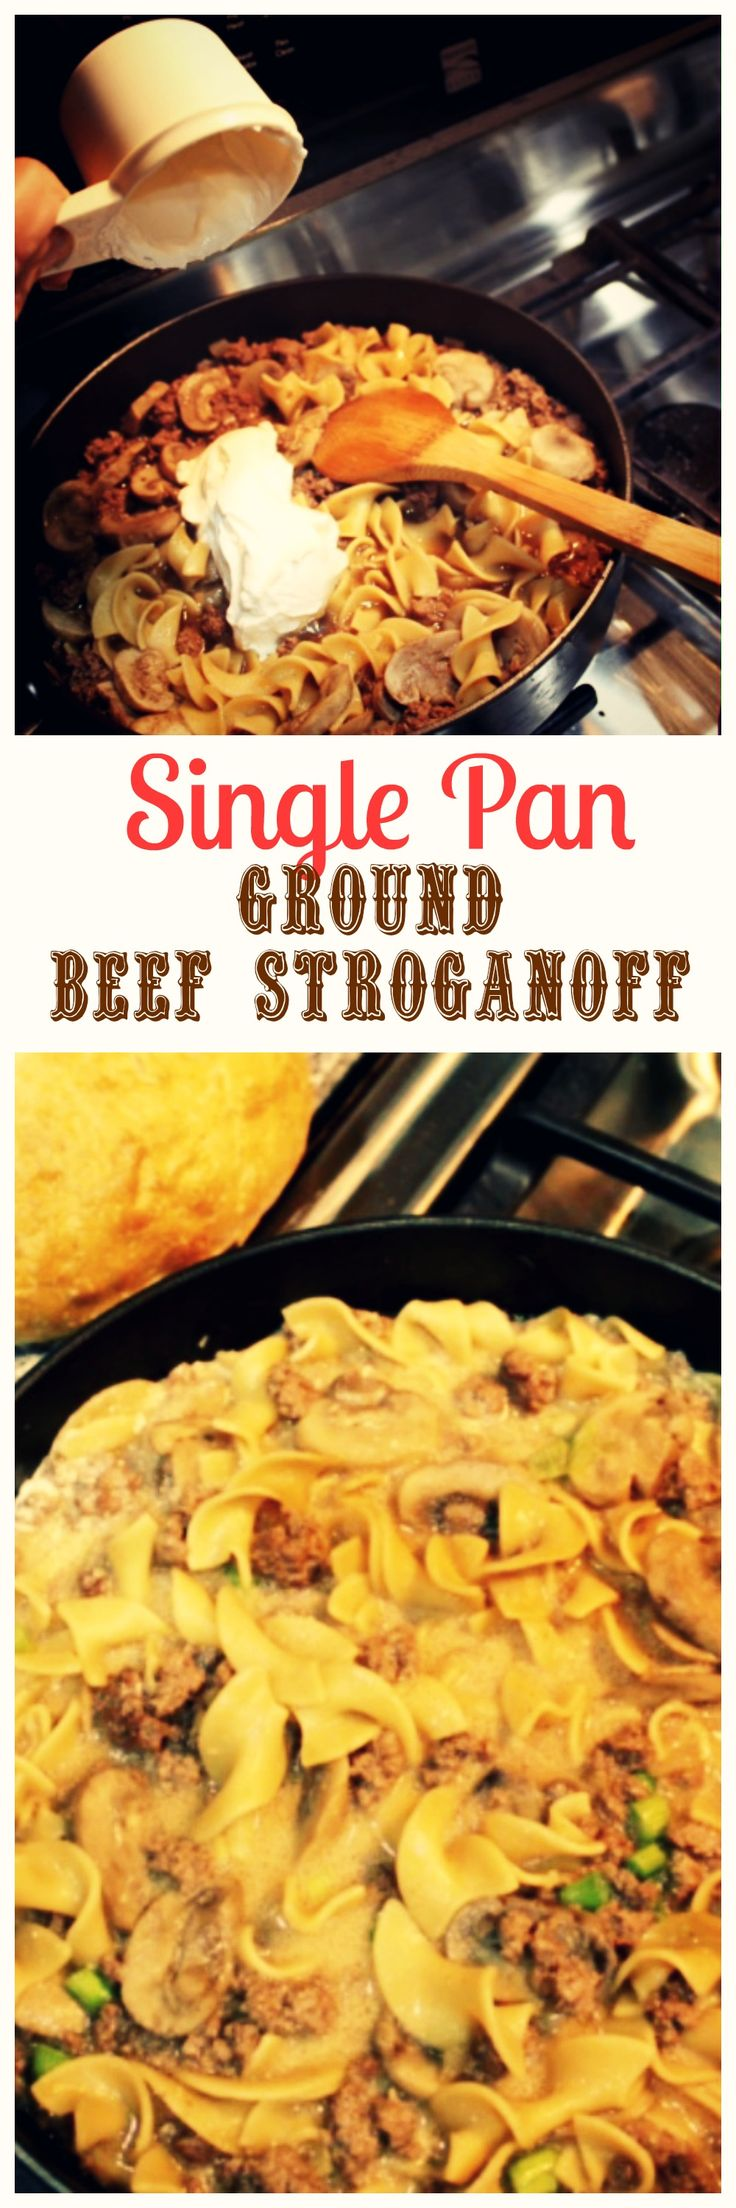 This Ground Beef Stroganoff recipe is made in one pan without canned soup.